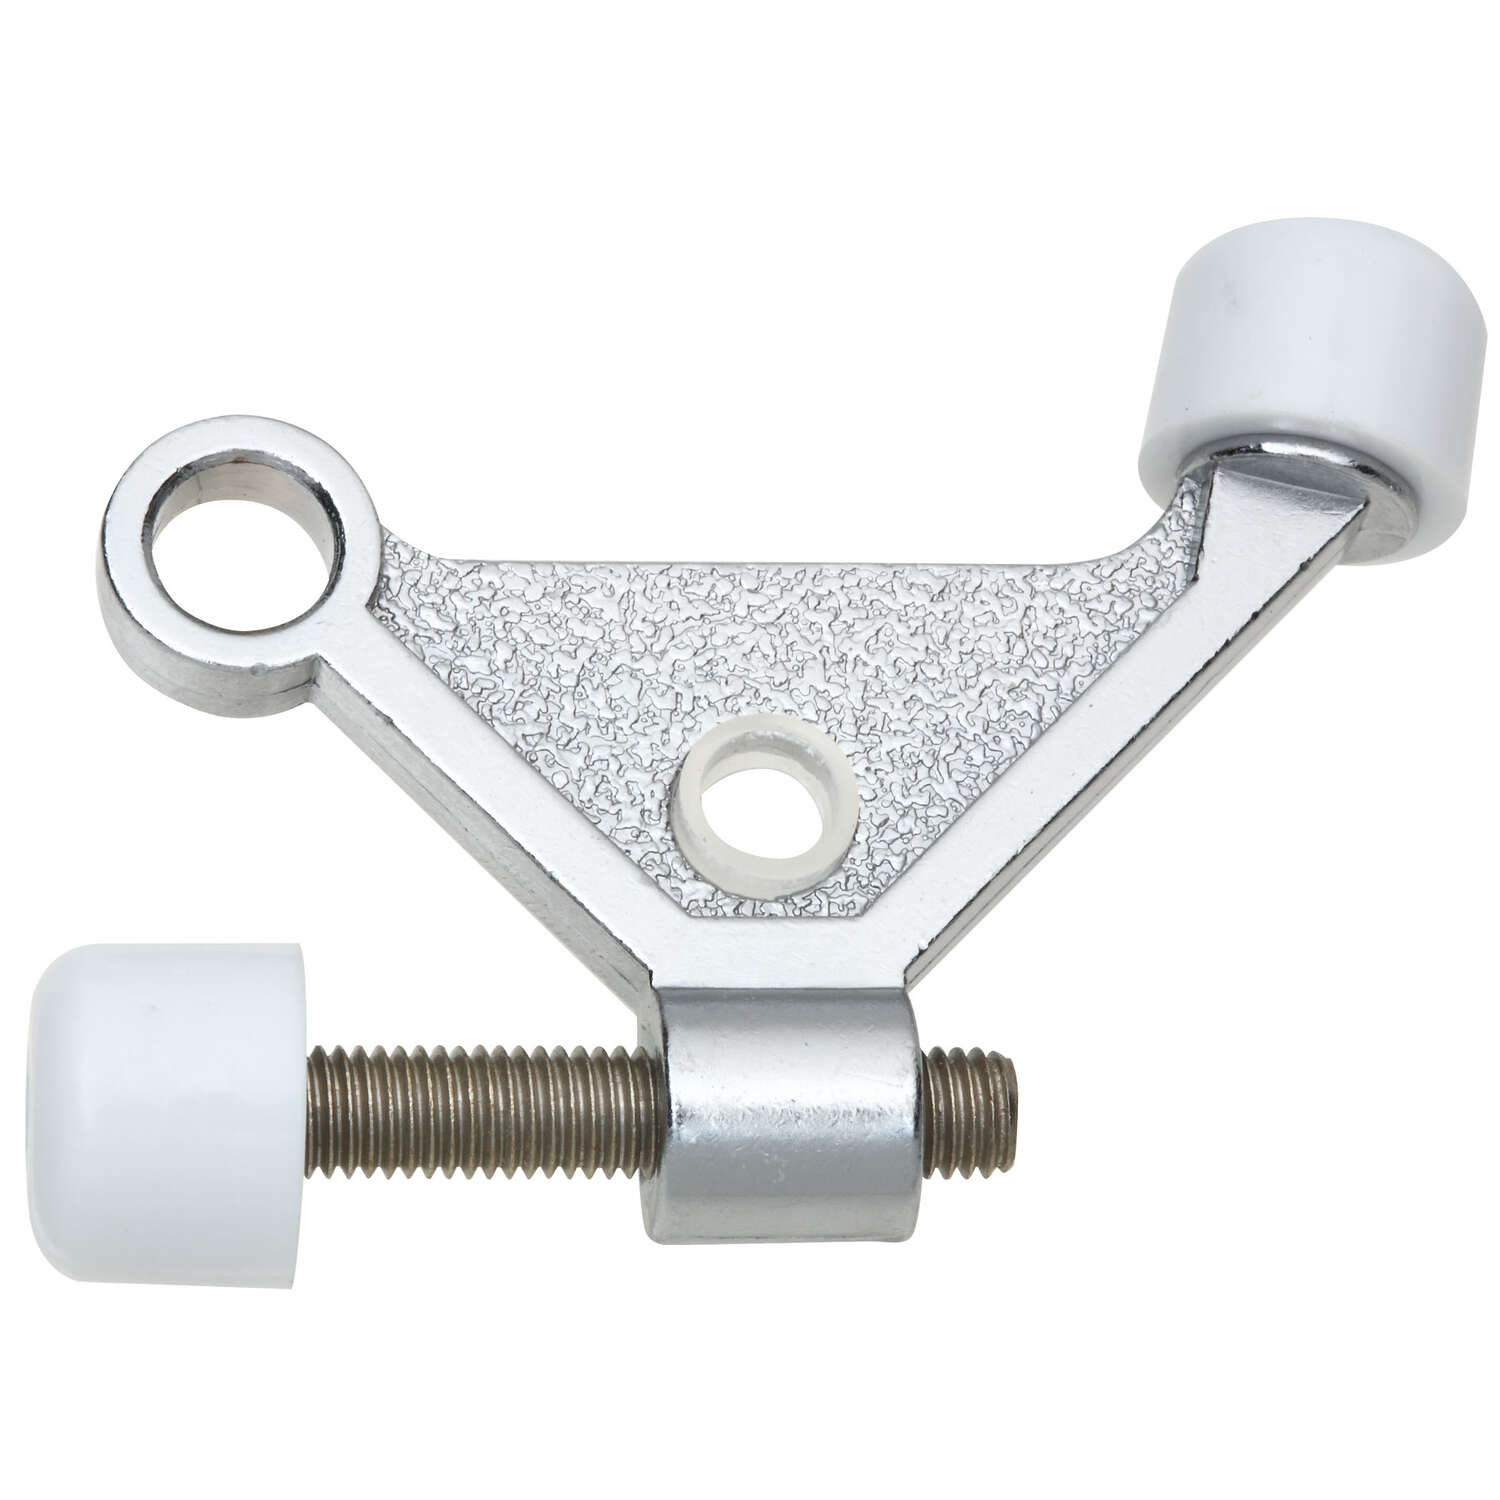 National Hardware  Zinc w/Rubber Tip  Satin Chrome  Hinge Pin Door Stop  Mounts to door hinge